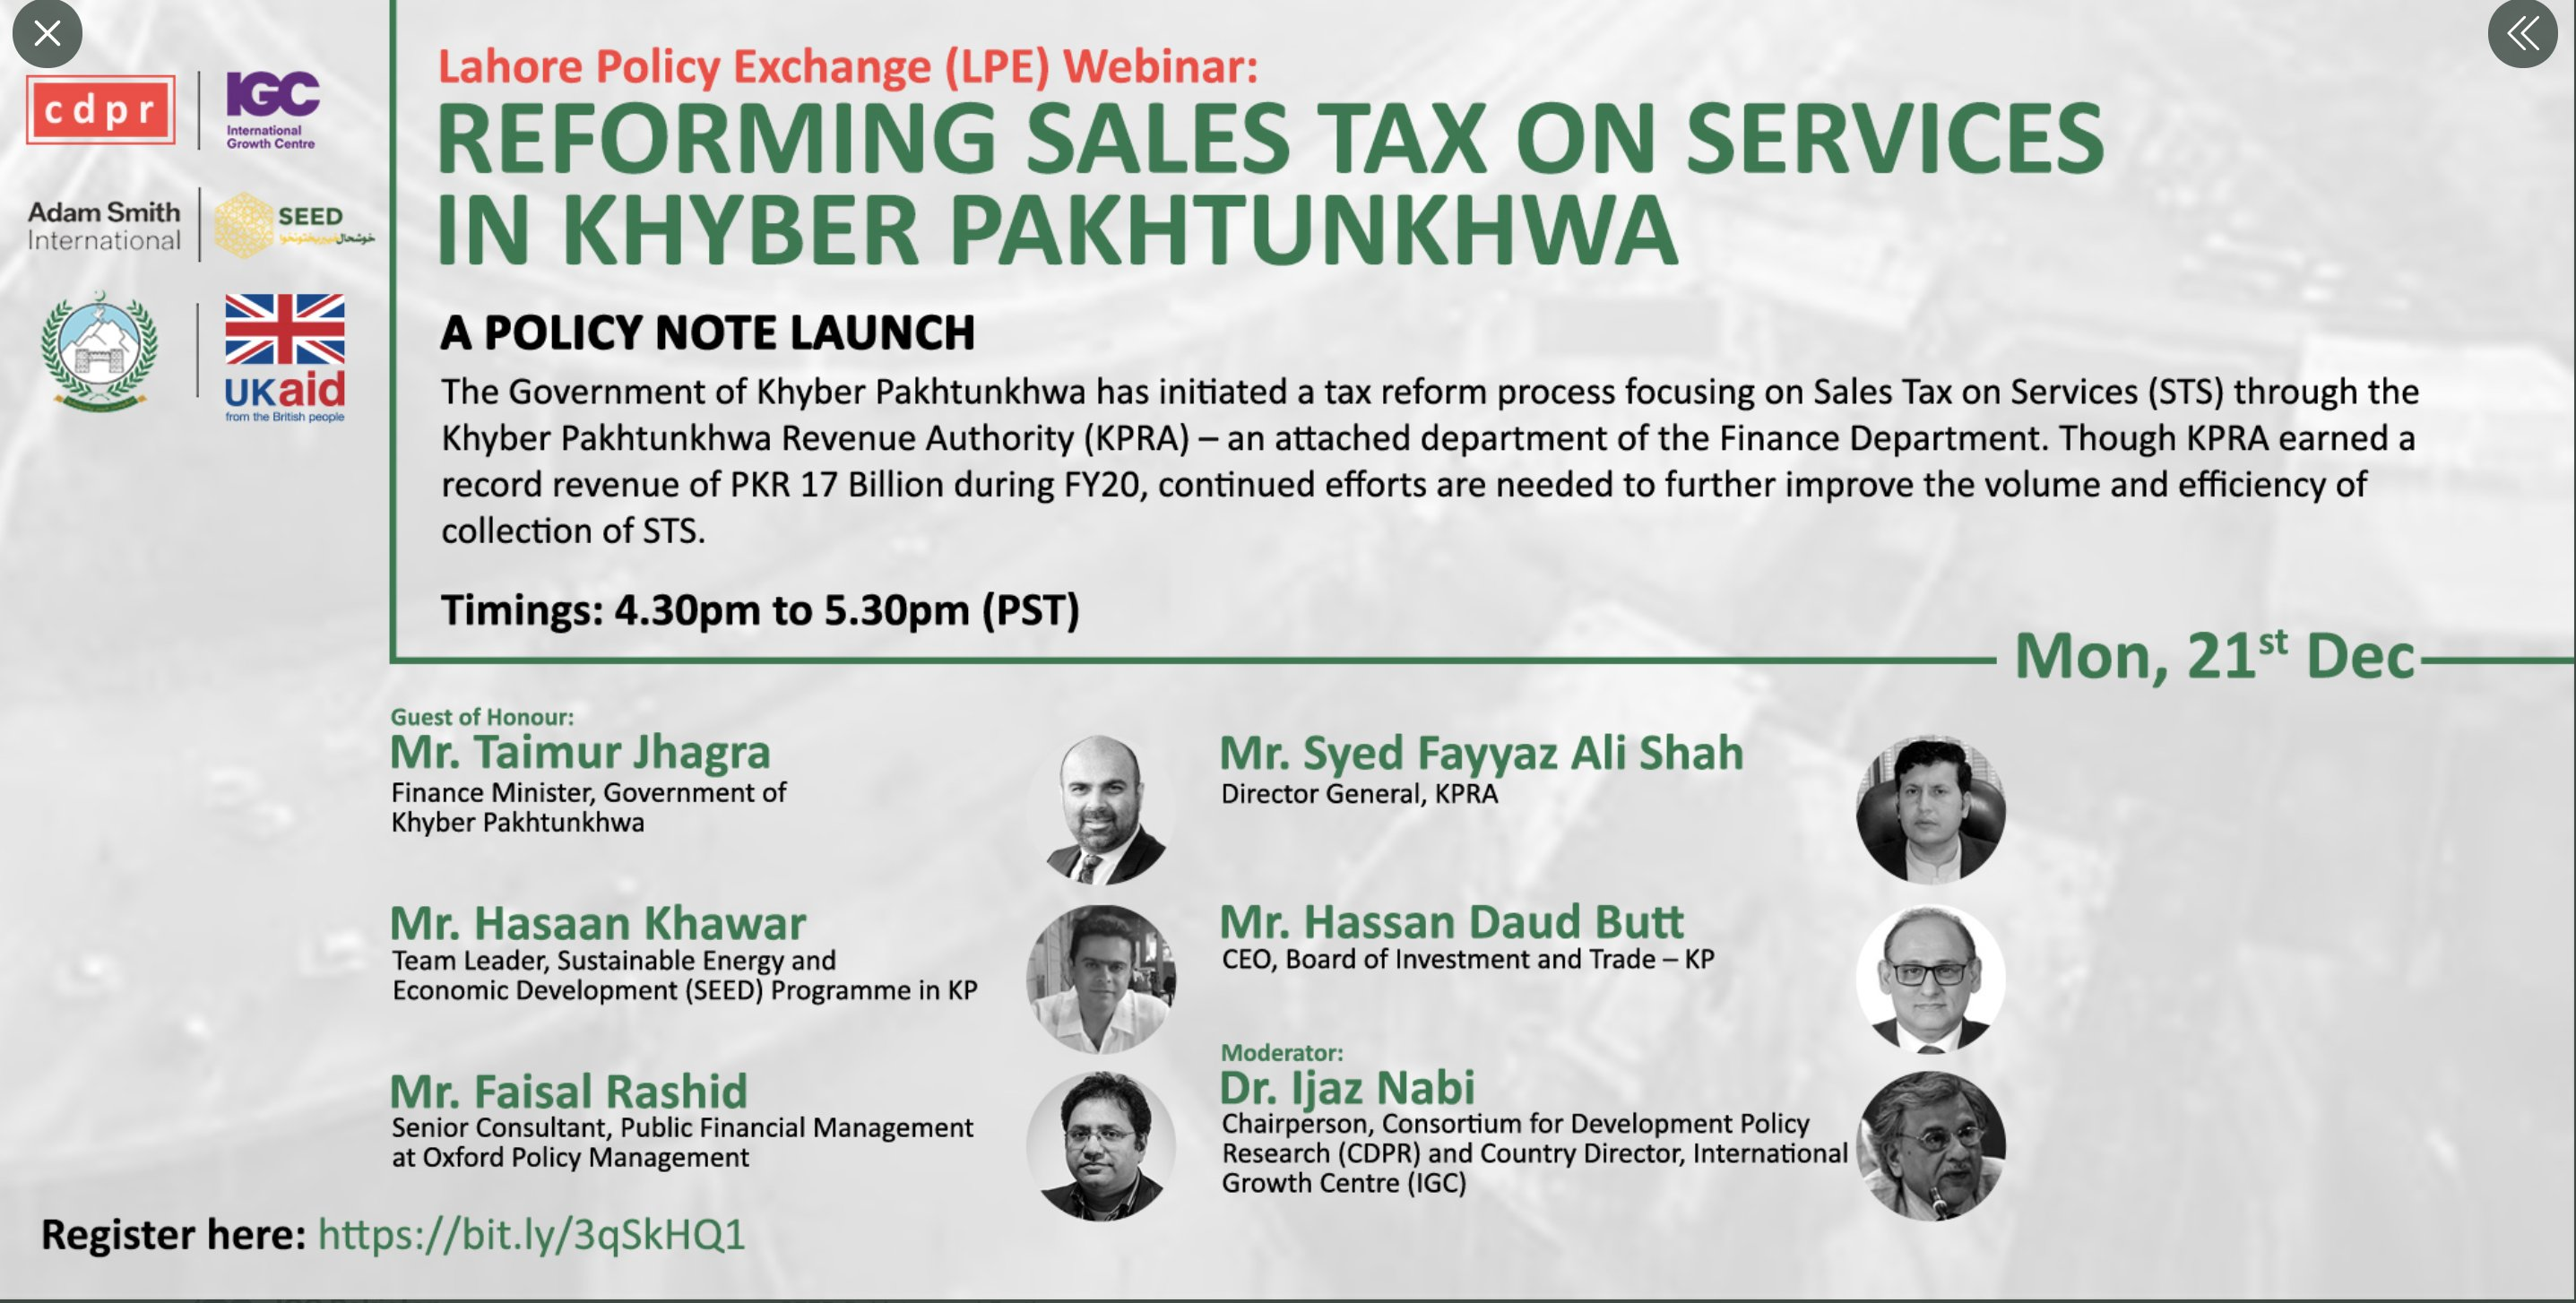 Webinar on Reforming Sales Tax on Services in Khyber Pakhtunkhwa